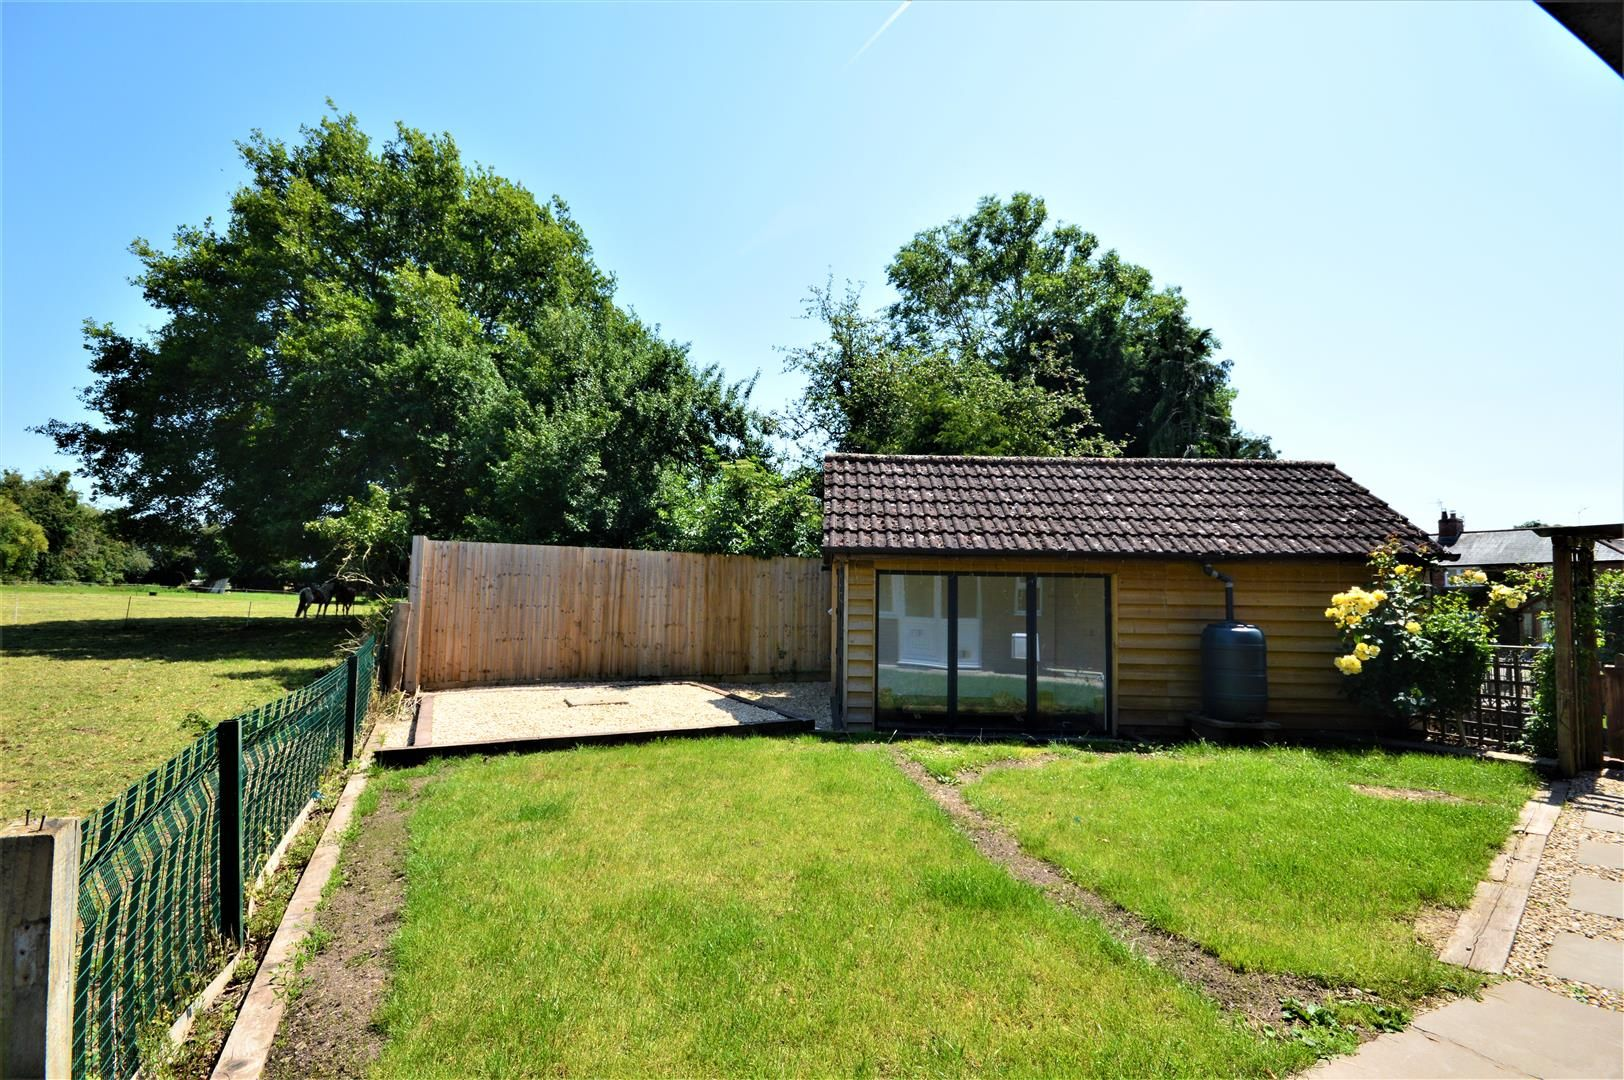 5 bed detached for sale in Sutton St. Nicholas  - Property Image 3